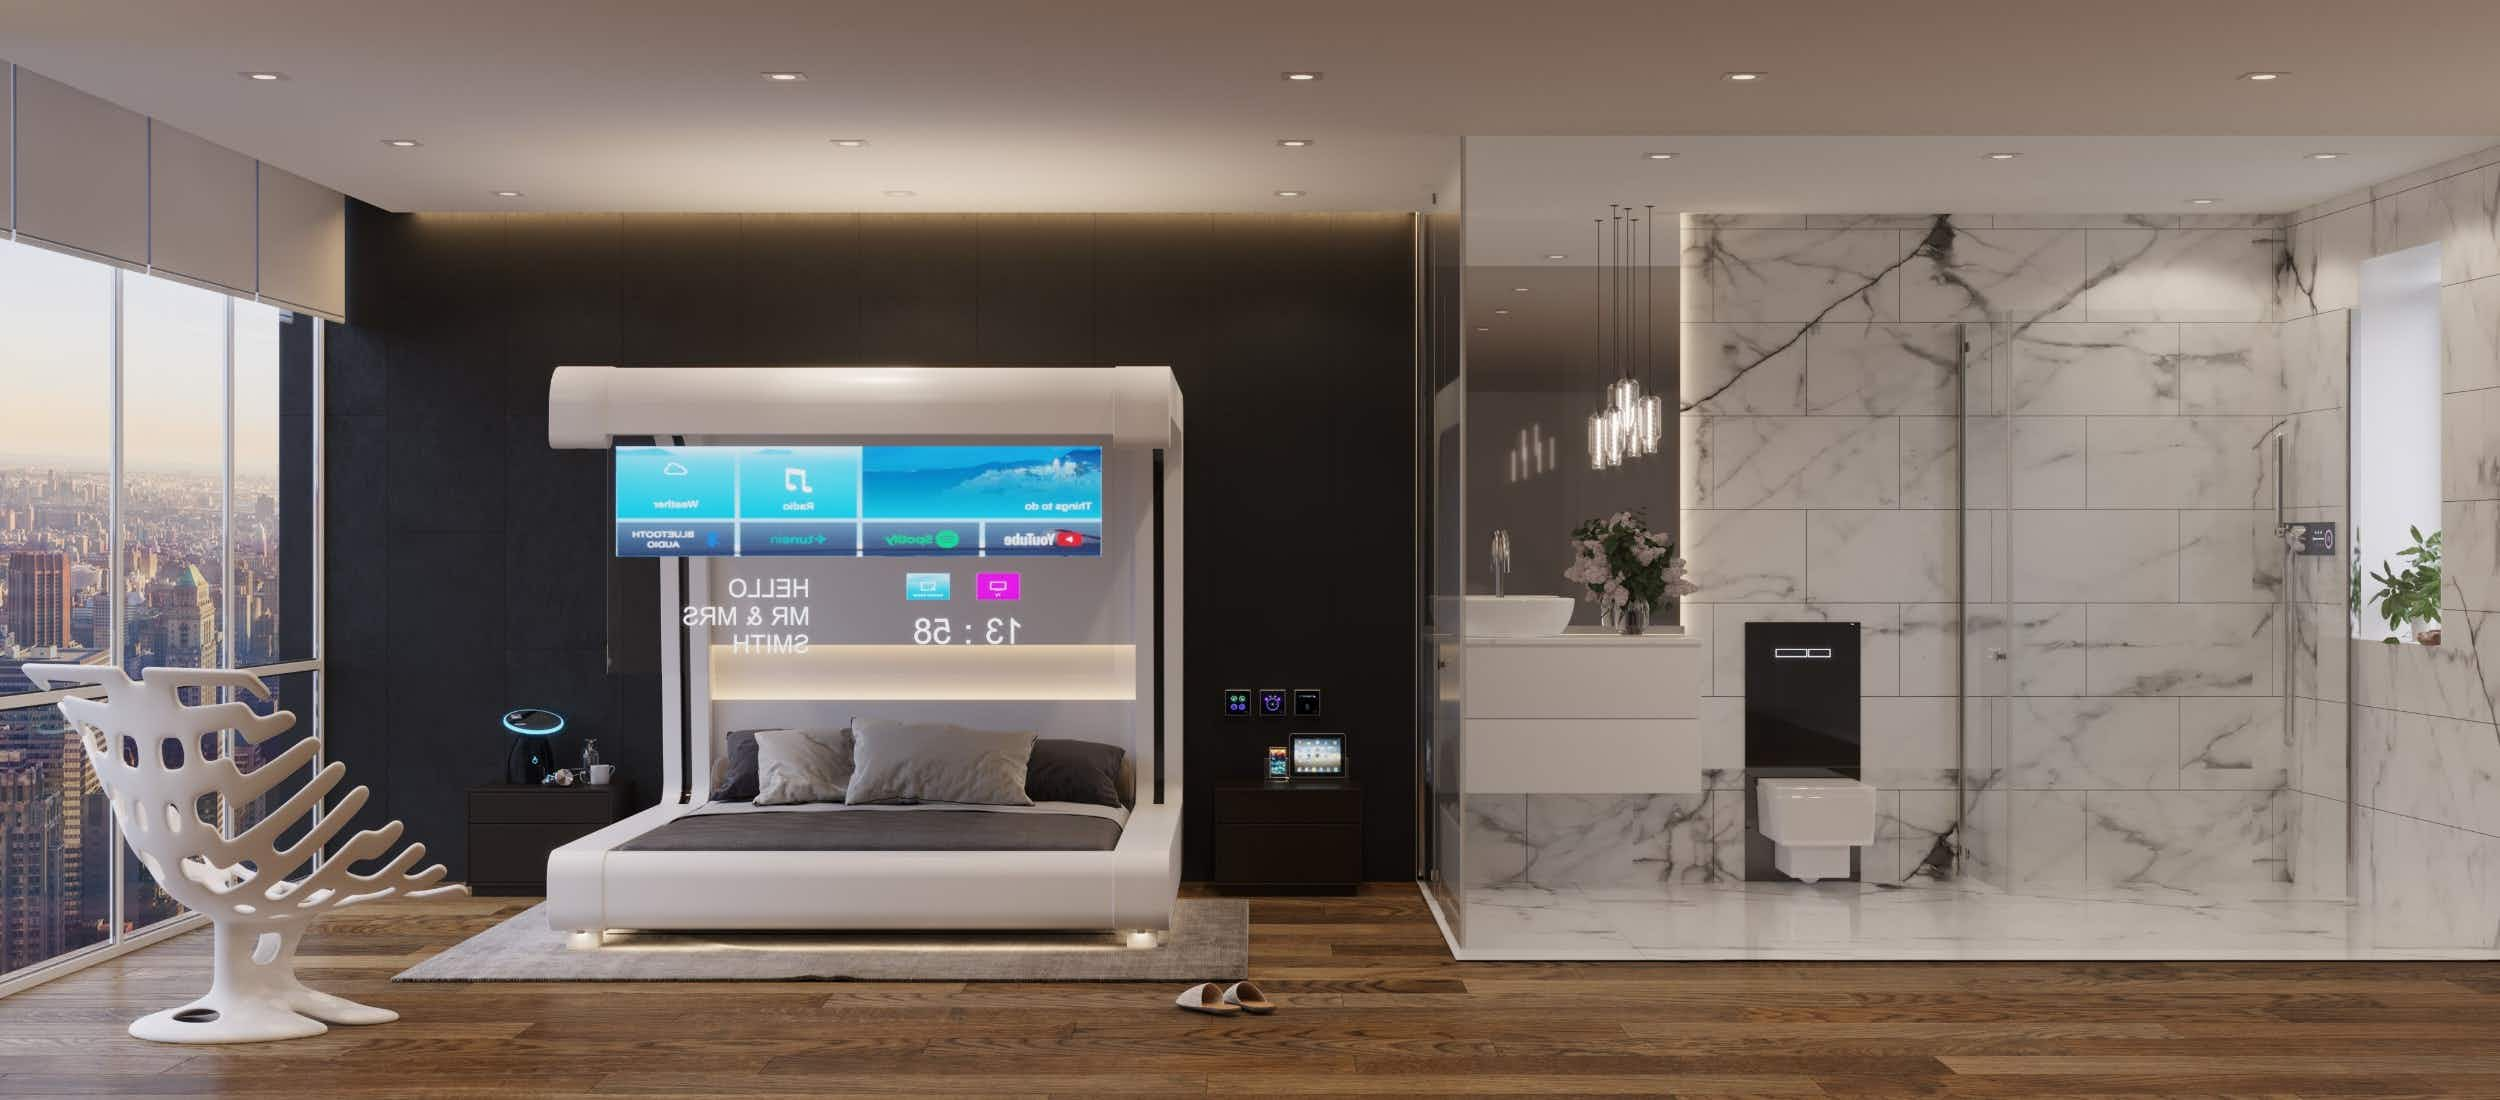 An interactive guest room shows the hotel room of the future. Image: Guestline